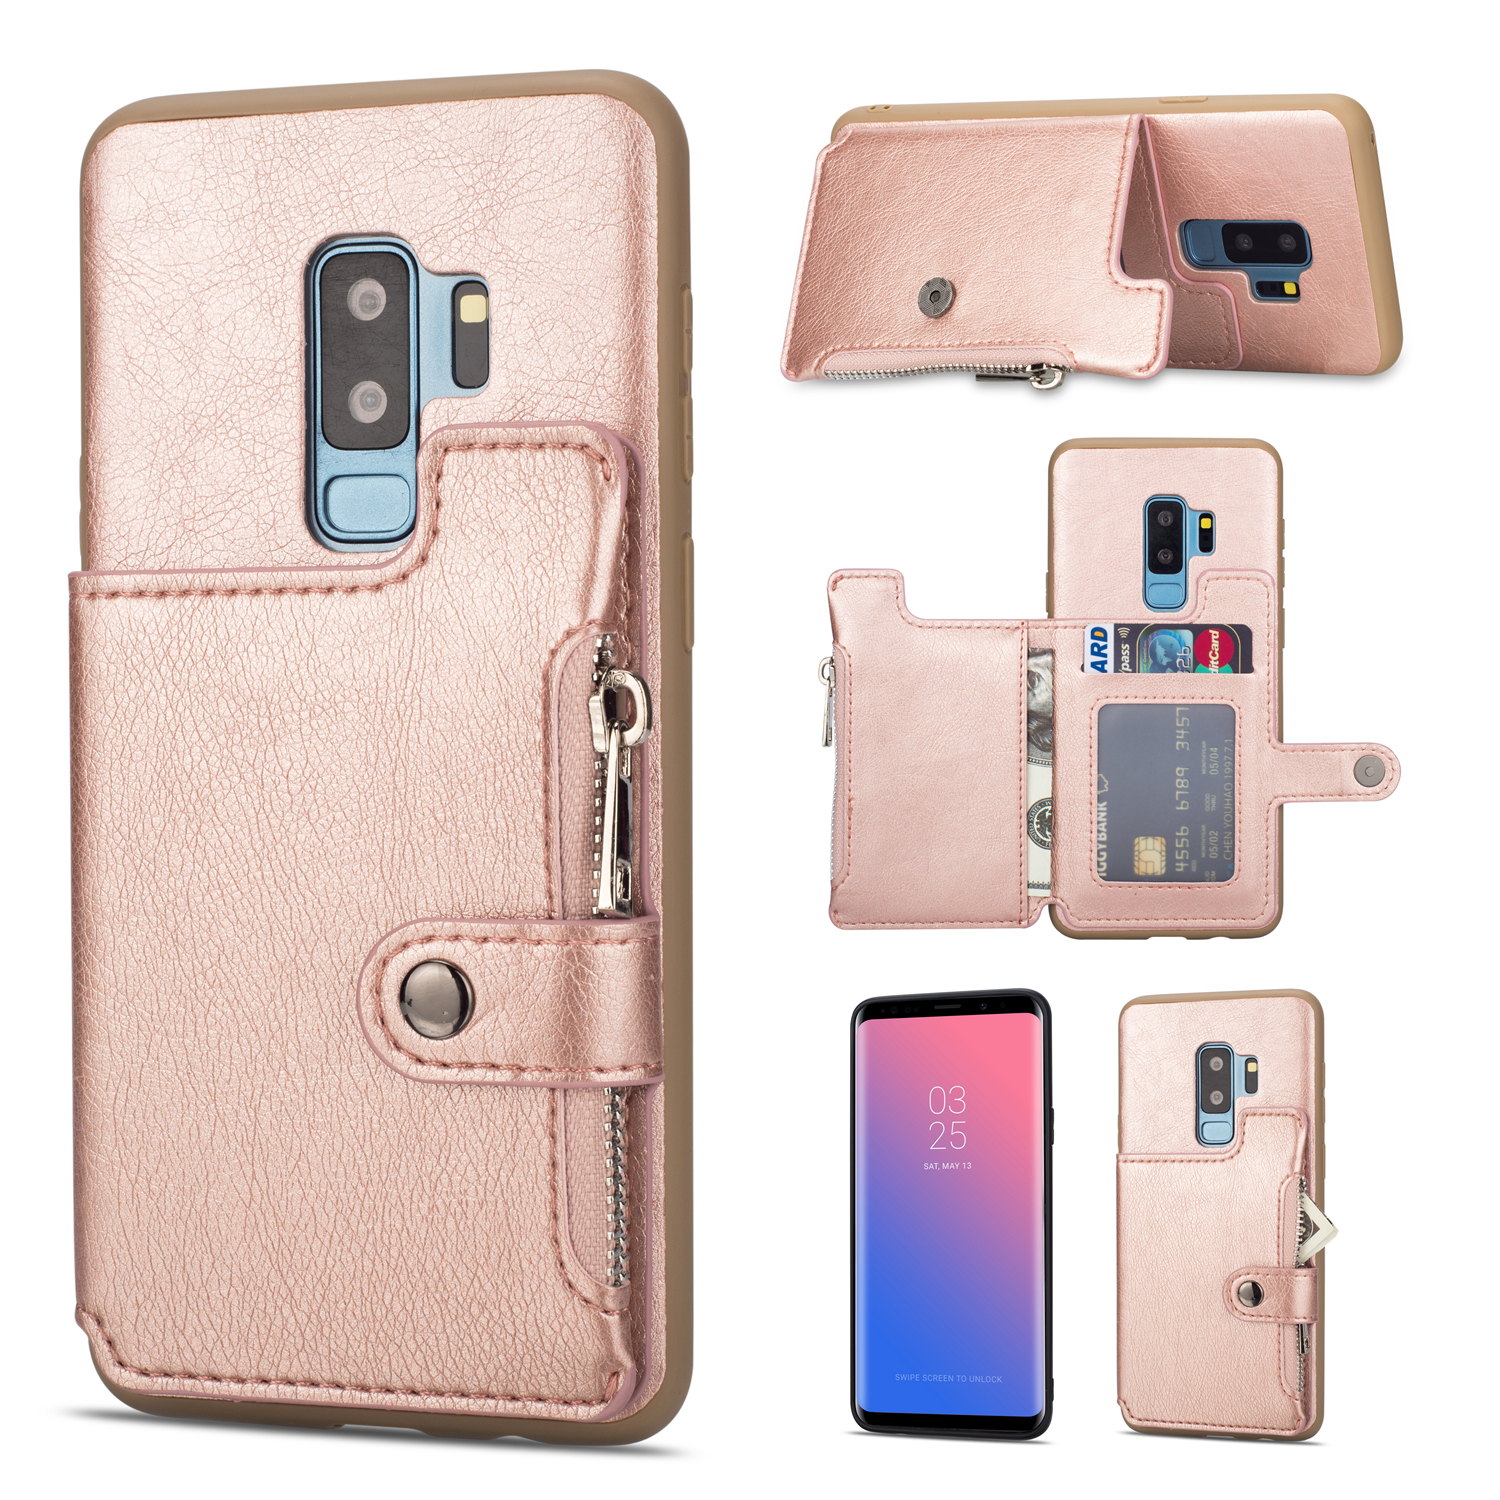 Galaxy S9 Plus Case, S9+ Case, Allytech PU Leather Slim Fit Heavy Duty Defender Shock-Absorbing Cards & Cash Holder Cover w/ Zipper Stand Wallet Cover for Samsung Galaxy S9 Plus, Rosegold